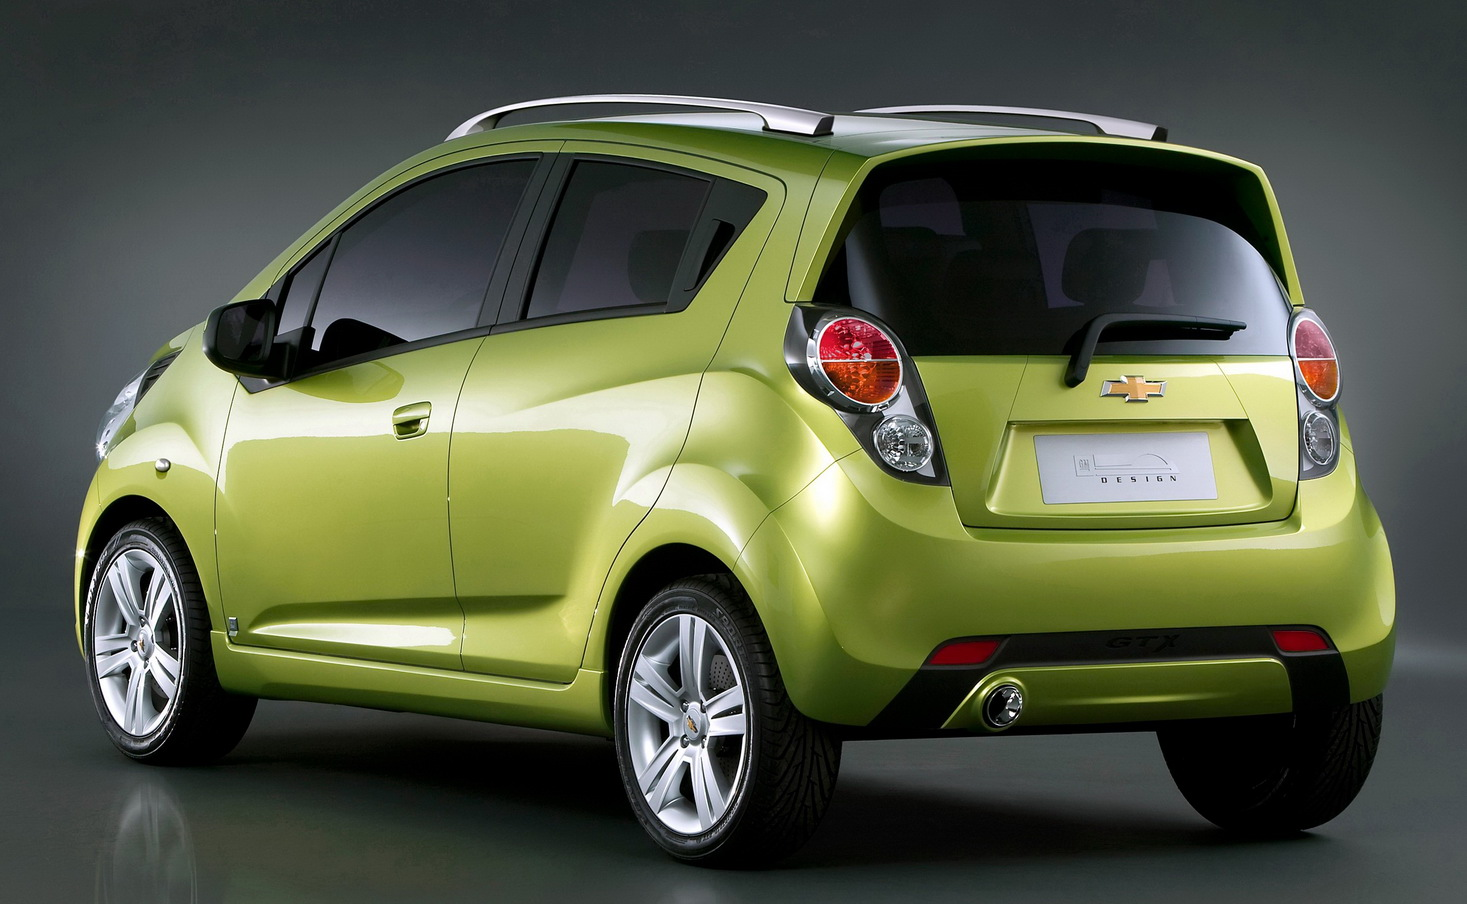 Chevrolet beat chevrolet beat the car